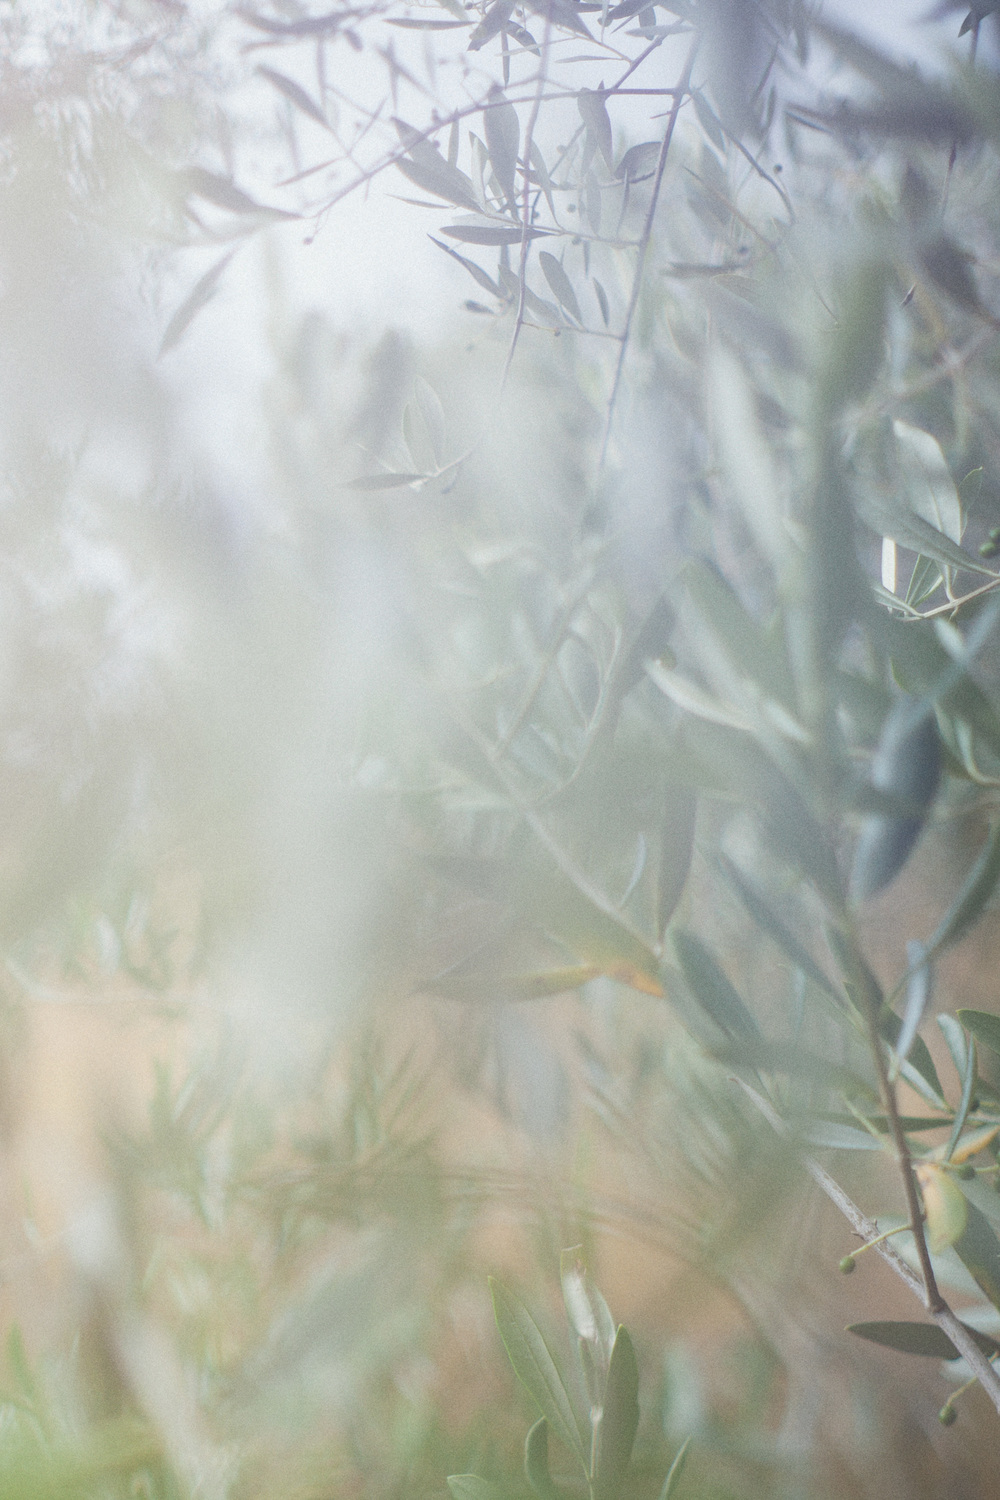 Olive trees are great for wedding photographers and wedding photos